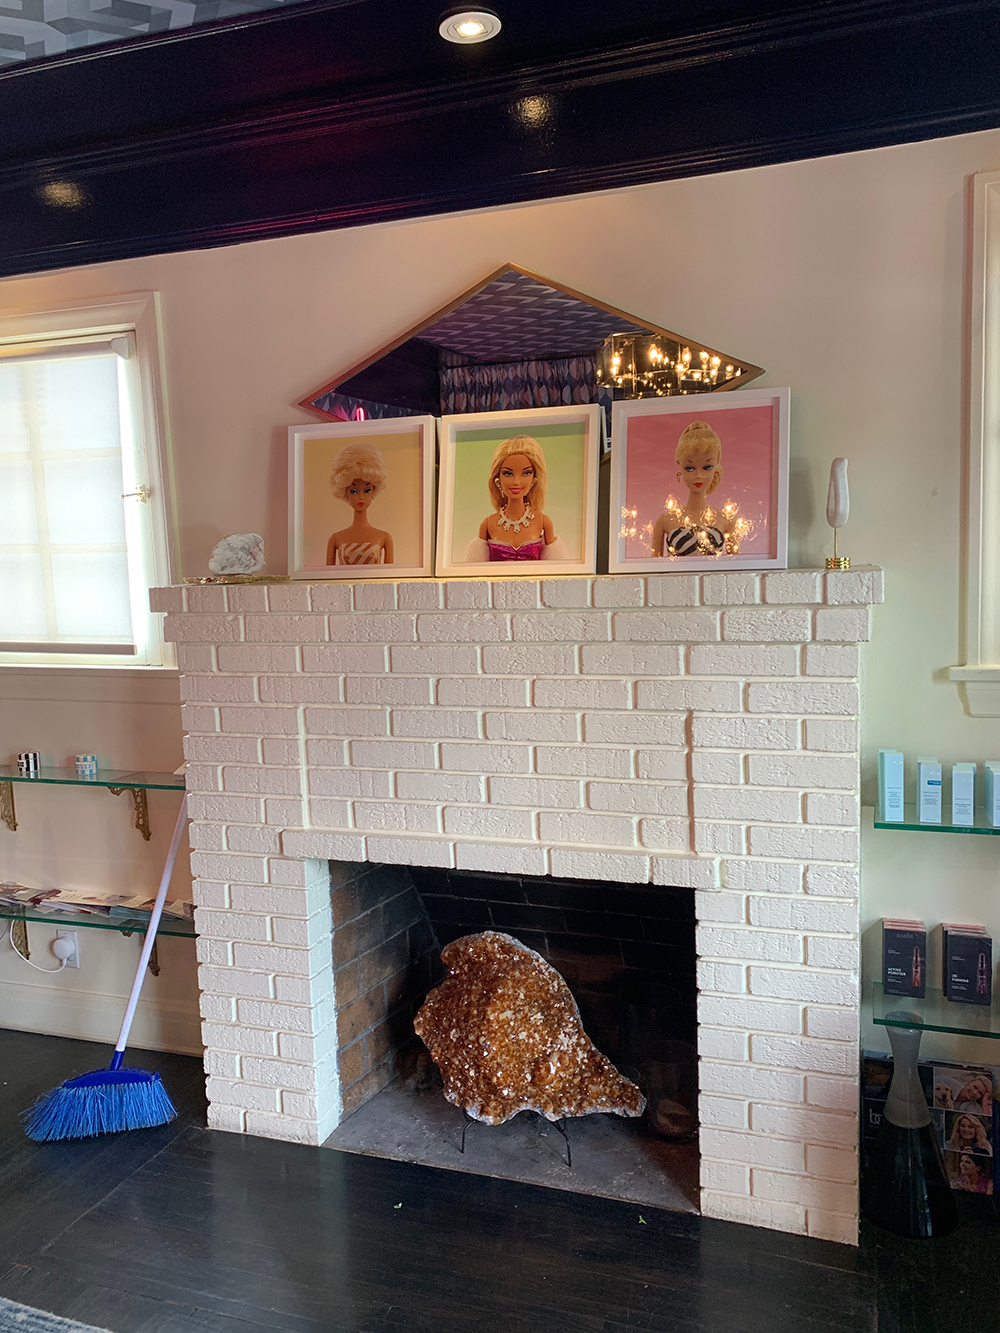 Barbie art hangs above the fireplace for a whimsical touch.